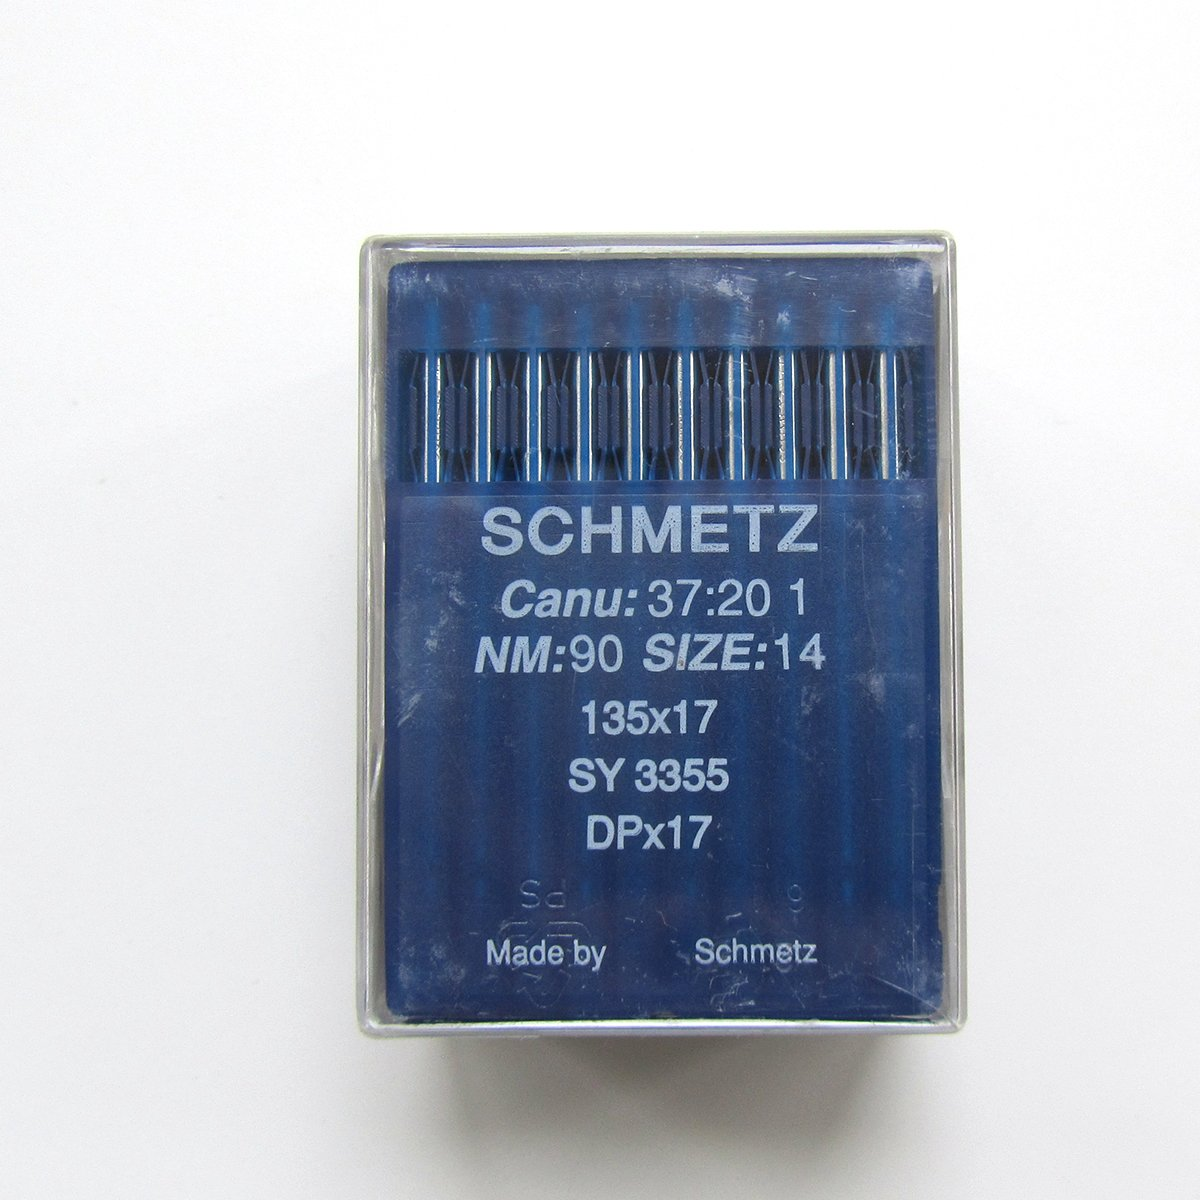 100 Schmetz 135X17 DPX17 SY3355 Industrial Sewing Machine Needles (DPX17 20/125) KUNPENG